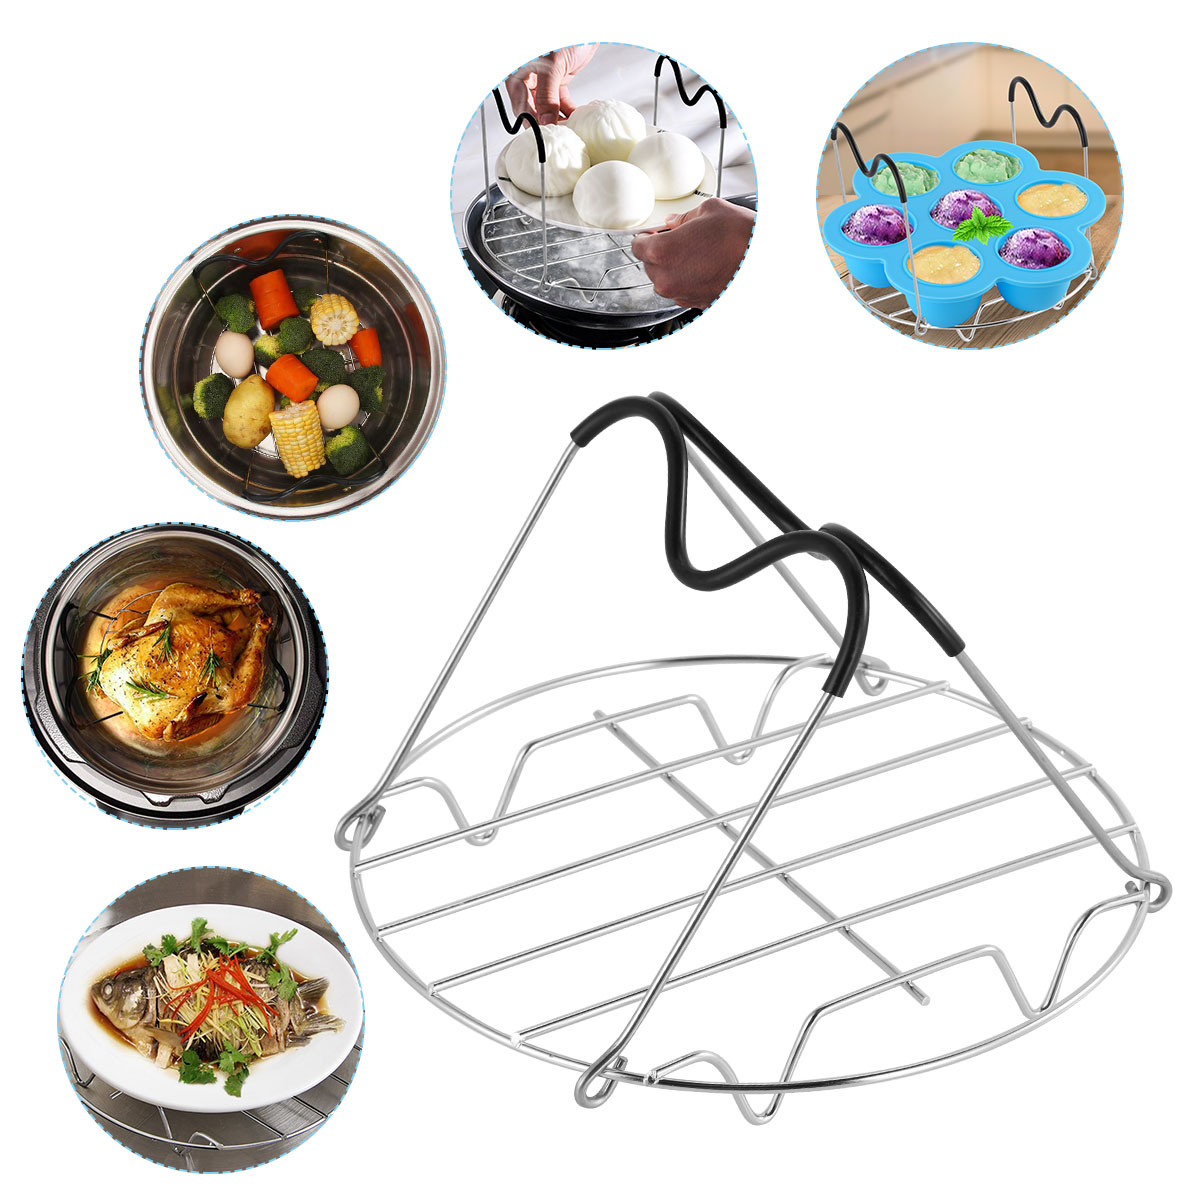 Steamer Rack Heat Resistant Silicone Handles Steaming Rack Trivet Stand For Pressure Cooker Compatible With 6 & 8 QT Accessories